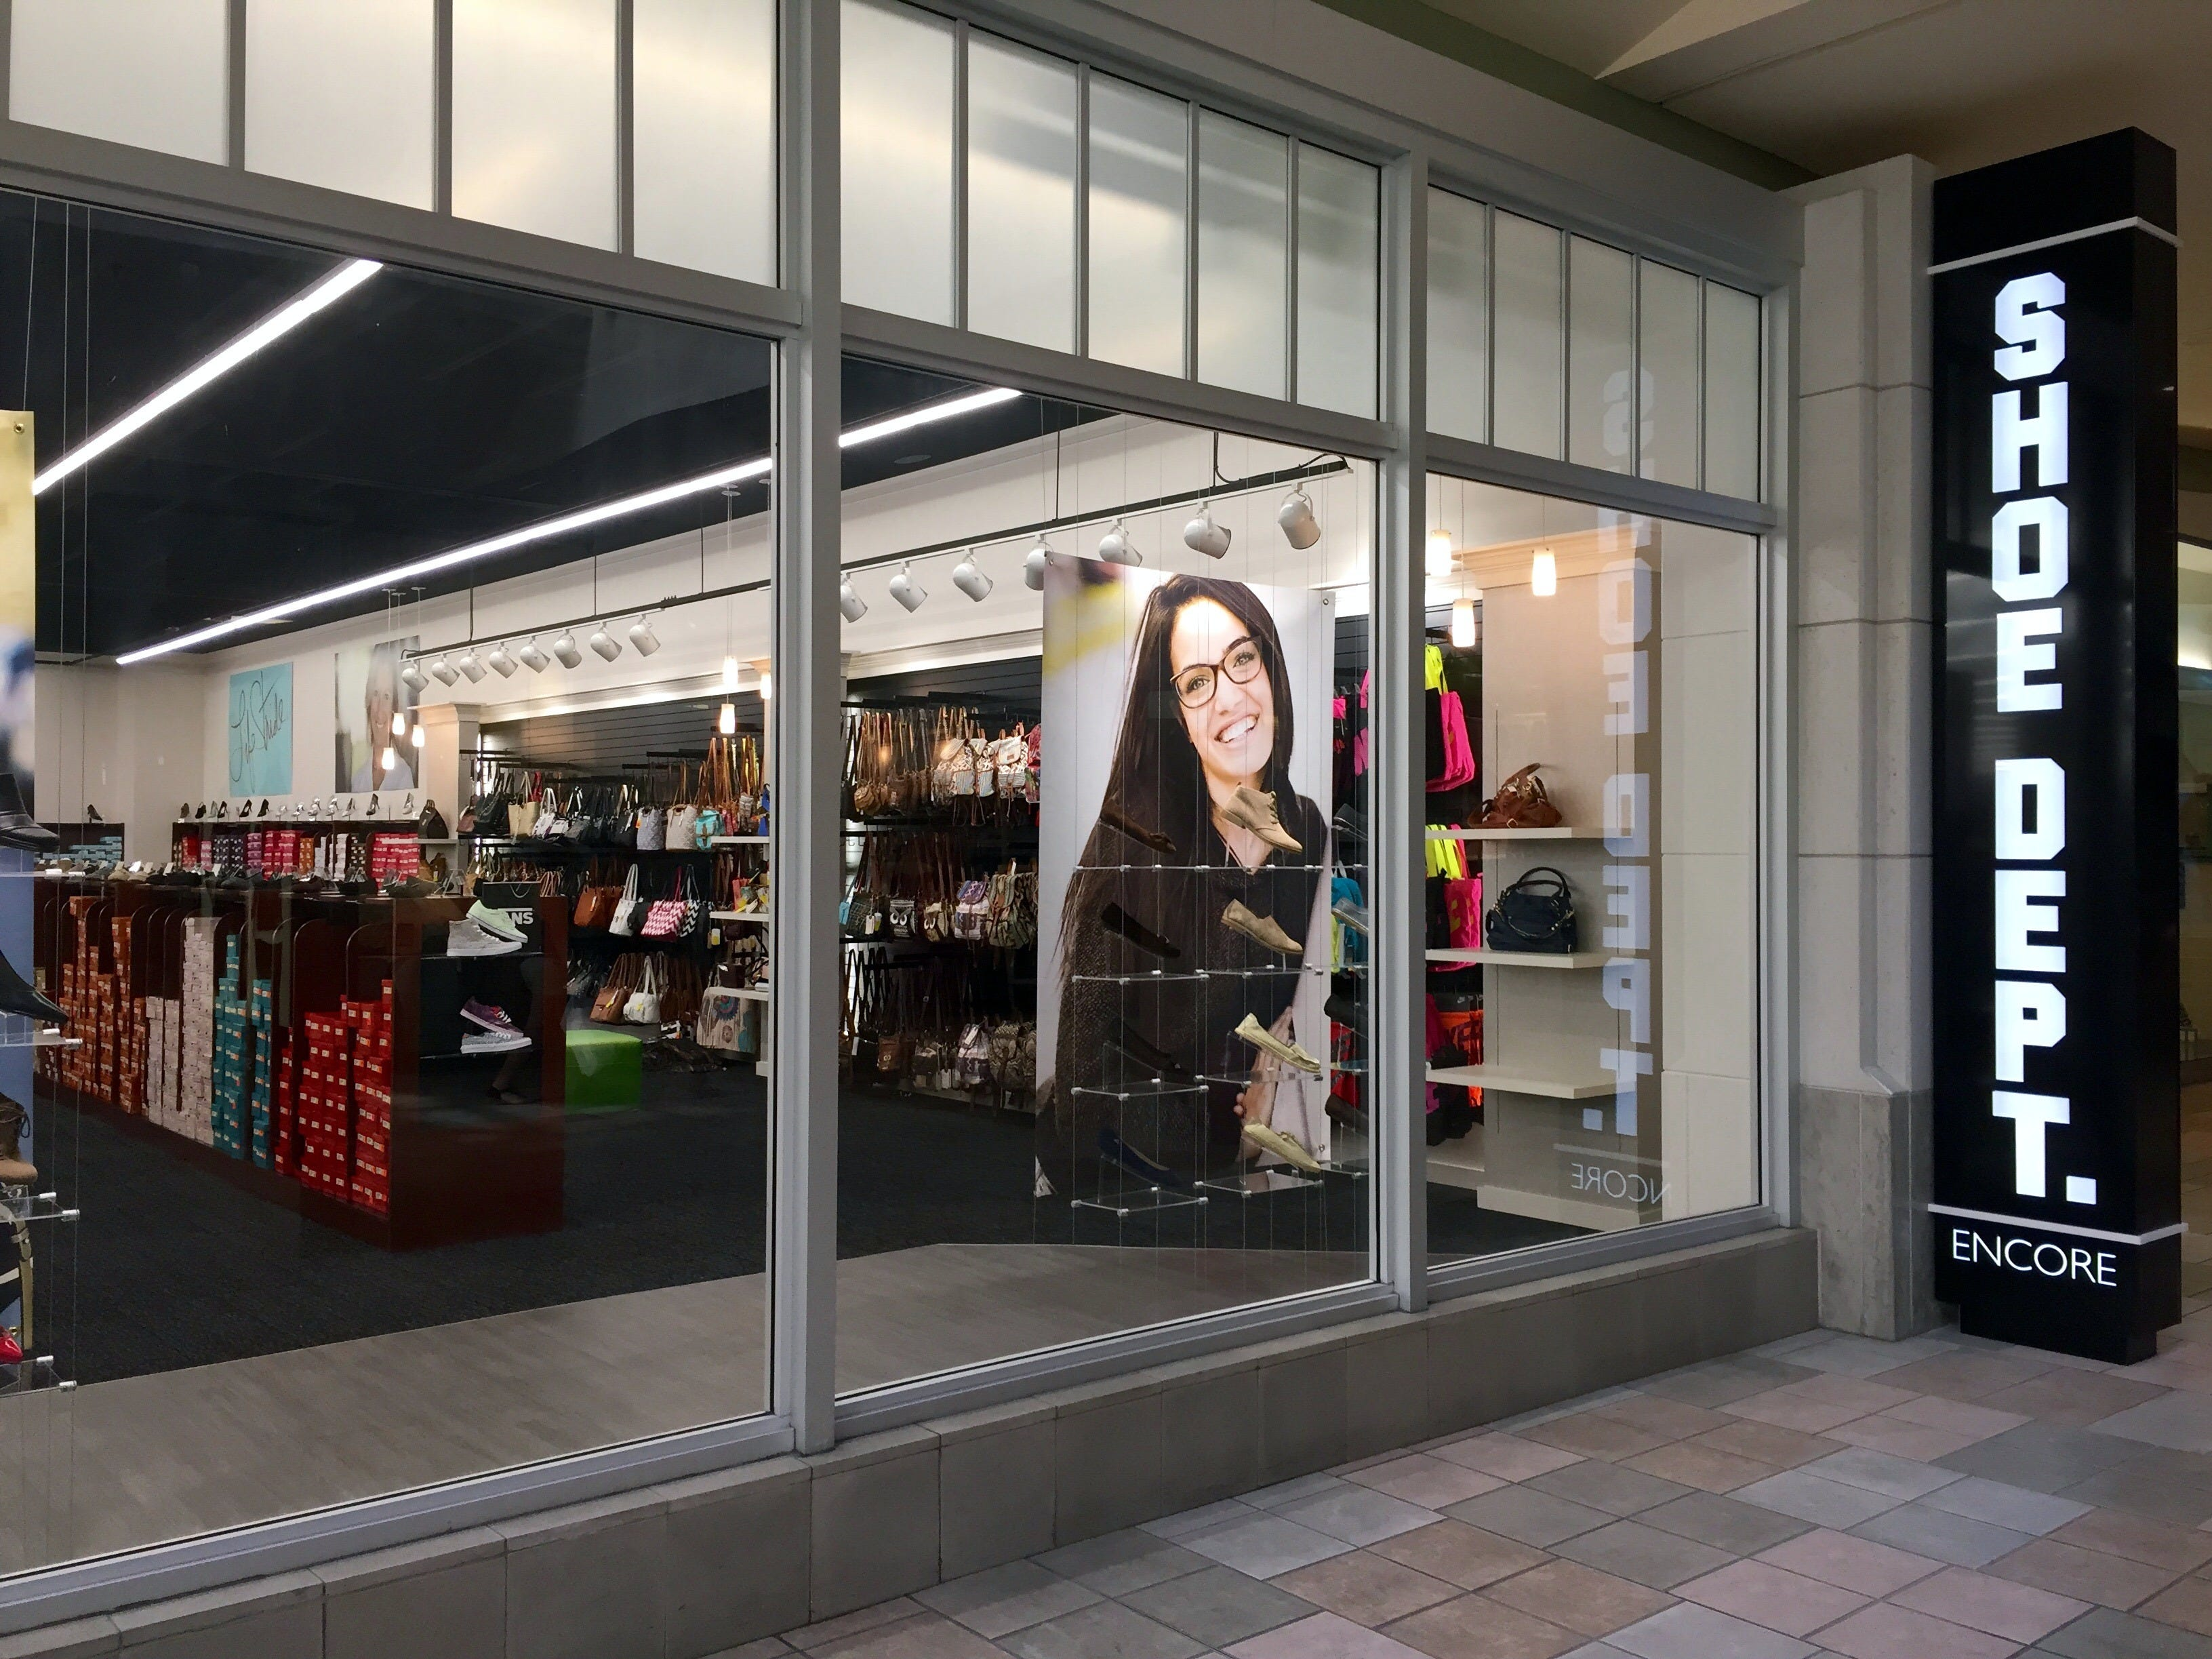 Shoe Dept. Encore, a national shoe retailer, will open Saturday, Aug. 1, 2015, in Knoxville Center Mall.